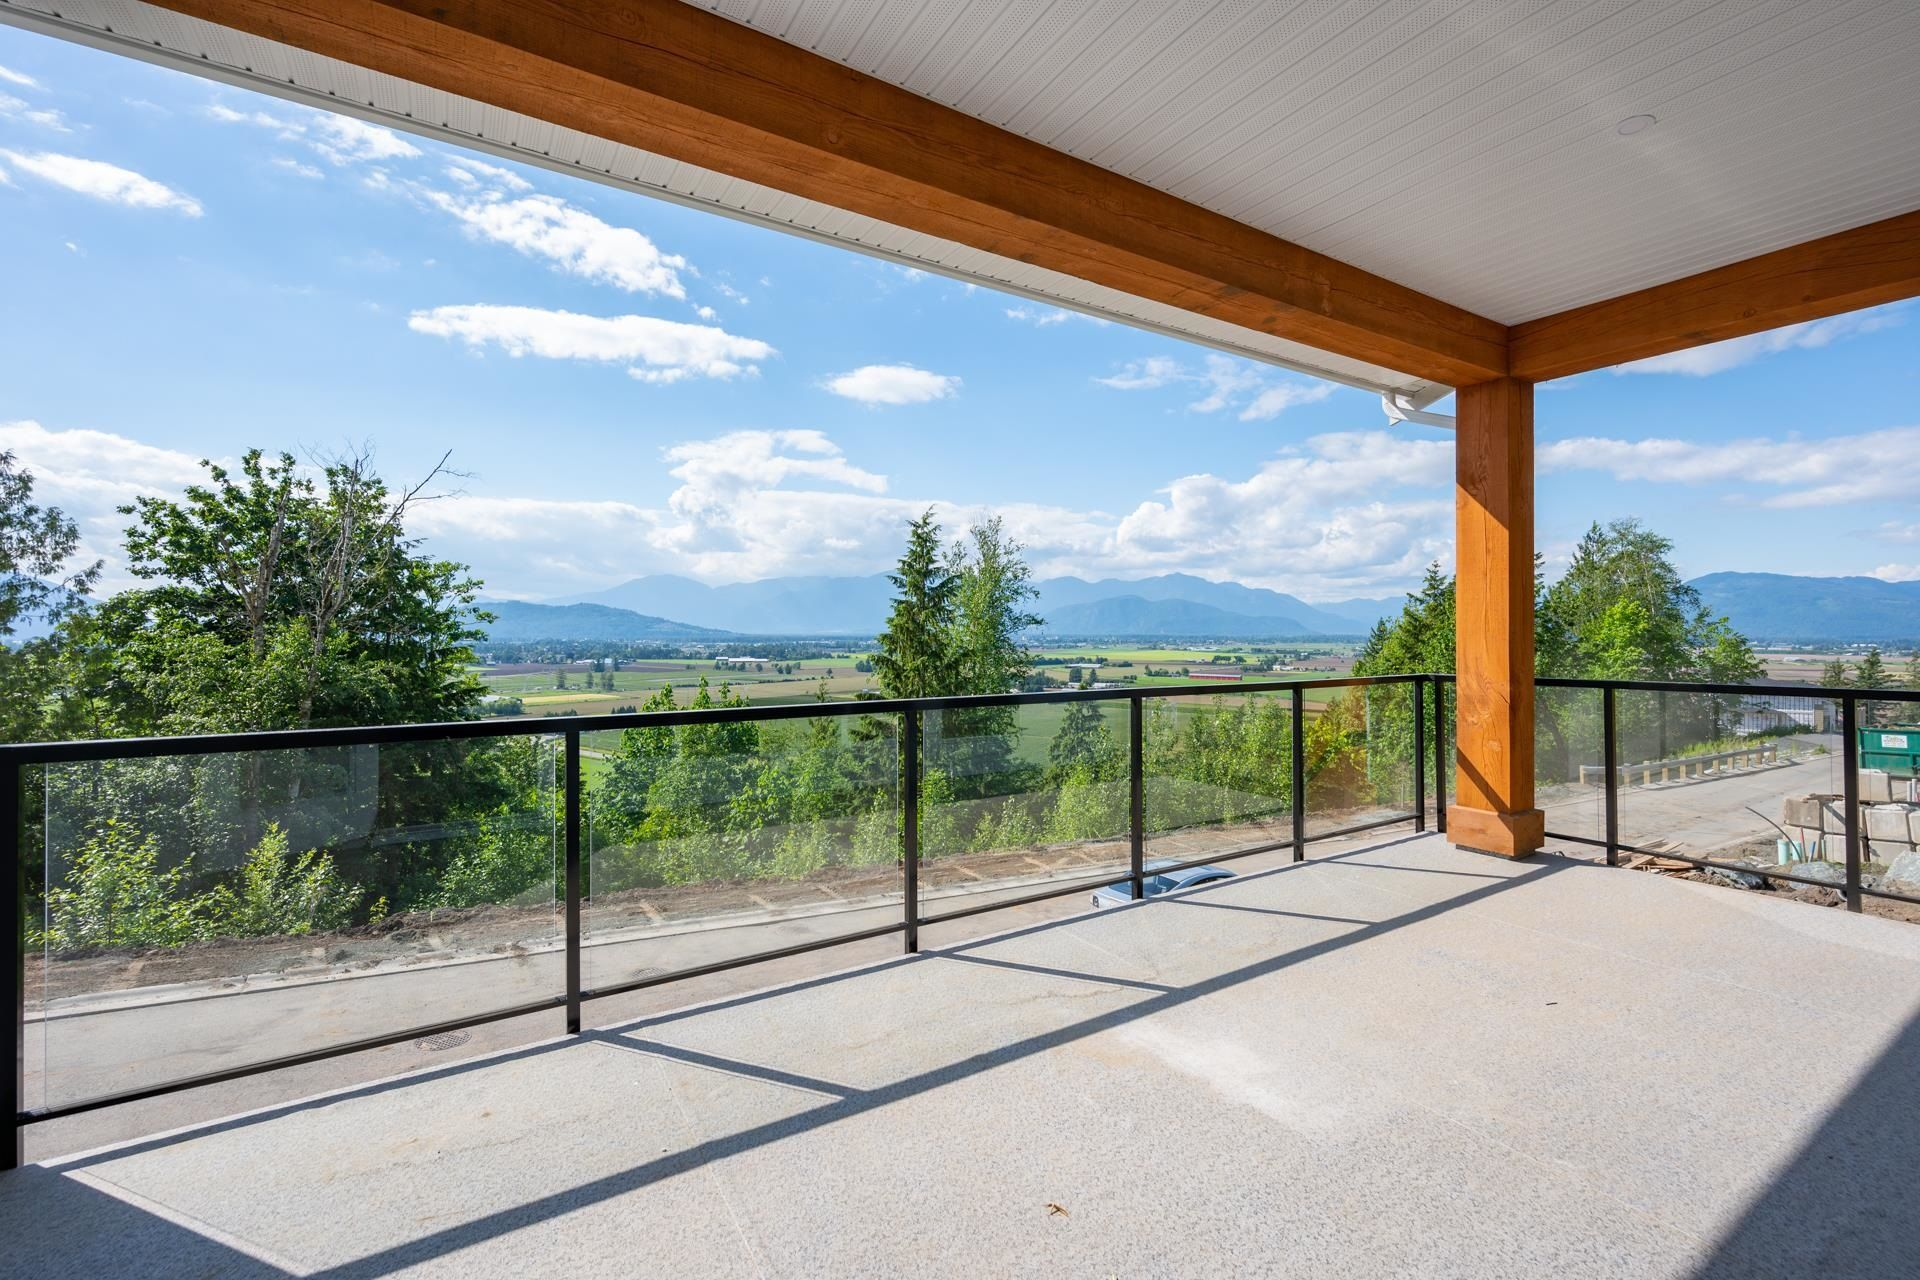 """Main Photo: 63 6262 REXFORD Drive in Sardis: Promontory House for sale in """"THE PERCH"""" : MLS®# R2613887"""